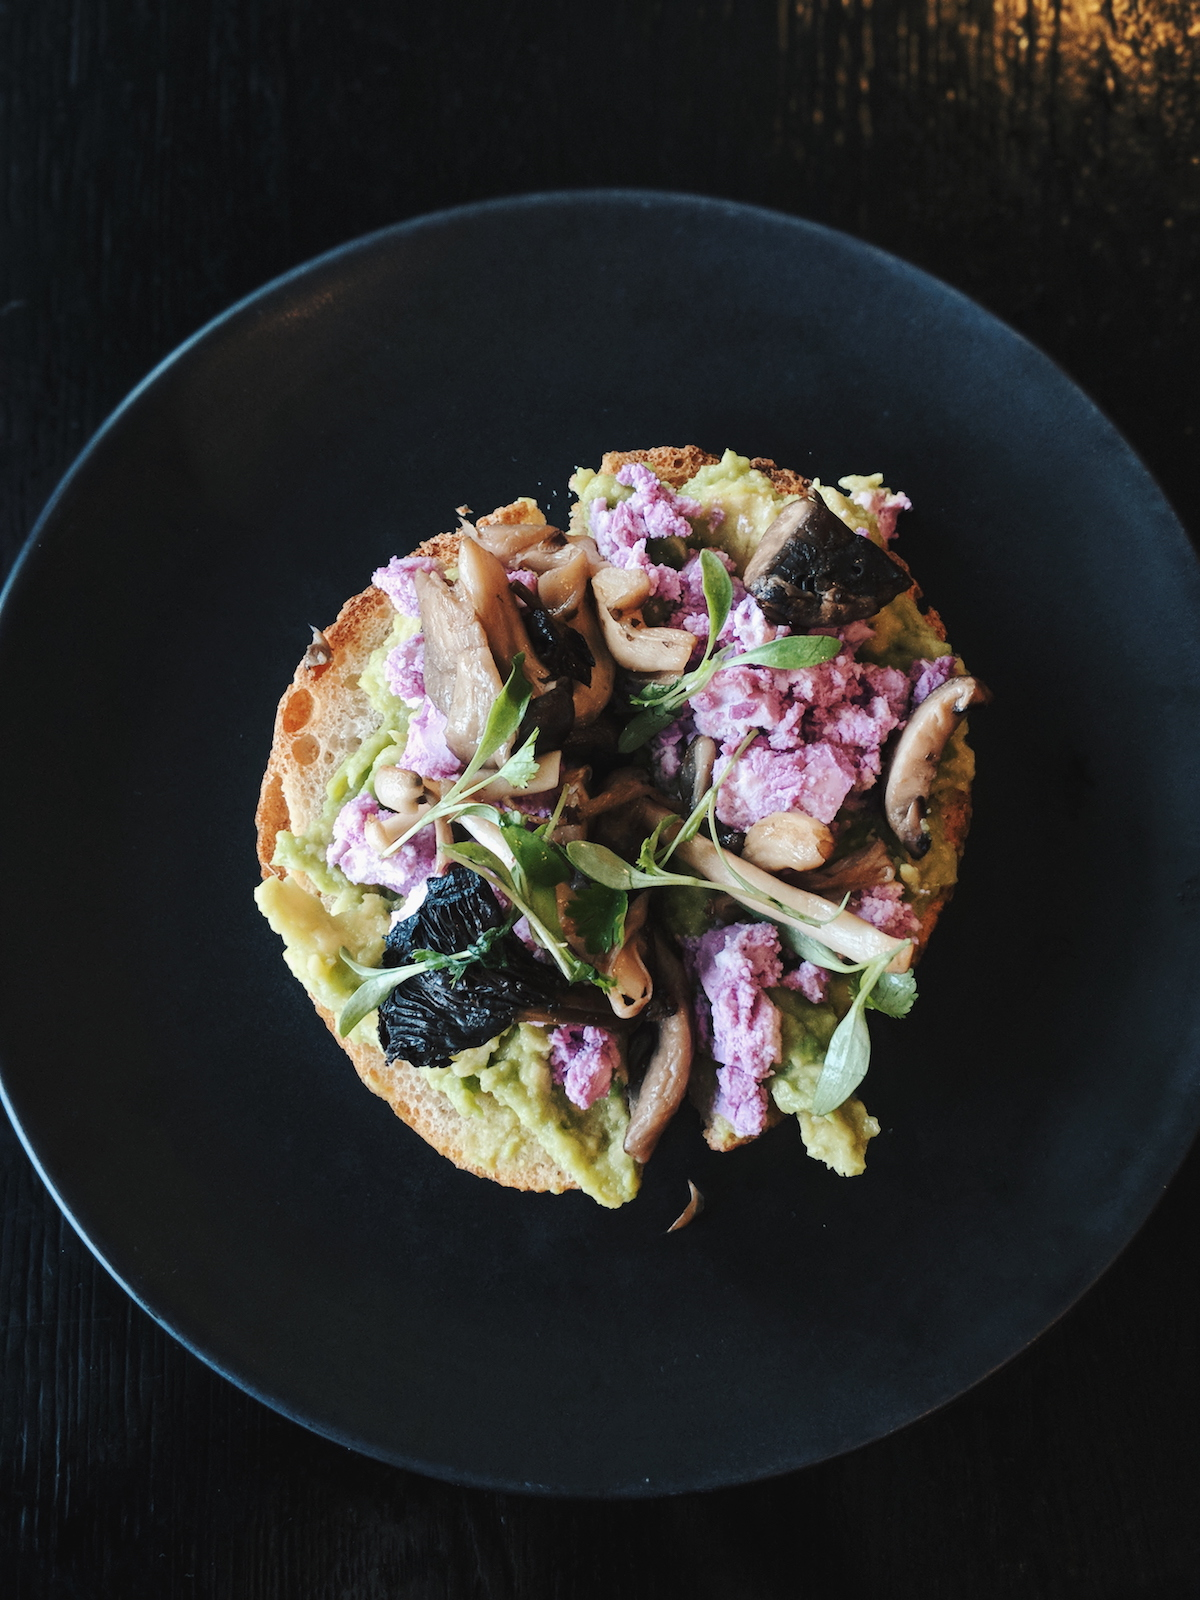 Avocado on toast with crumbled red cabbage feta & wild mushrooms